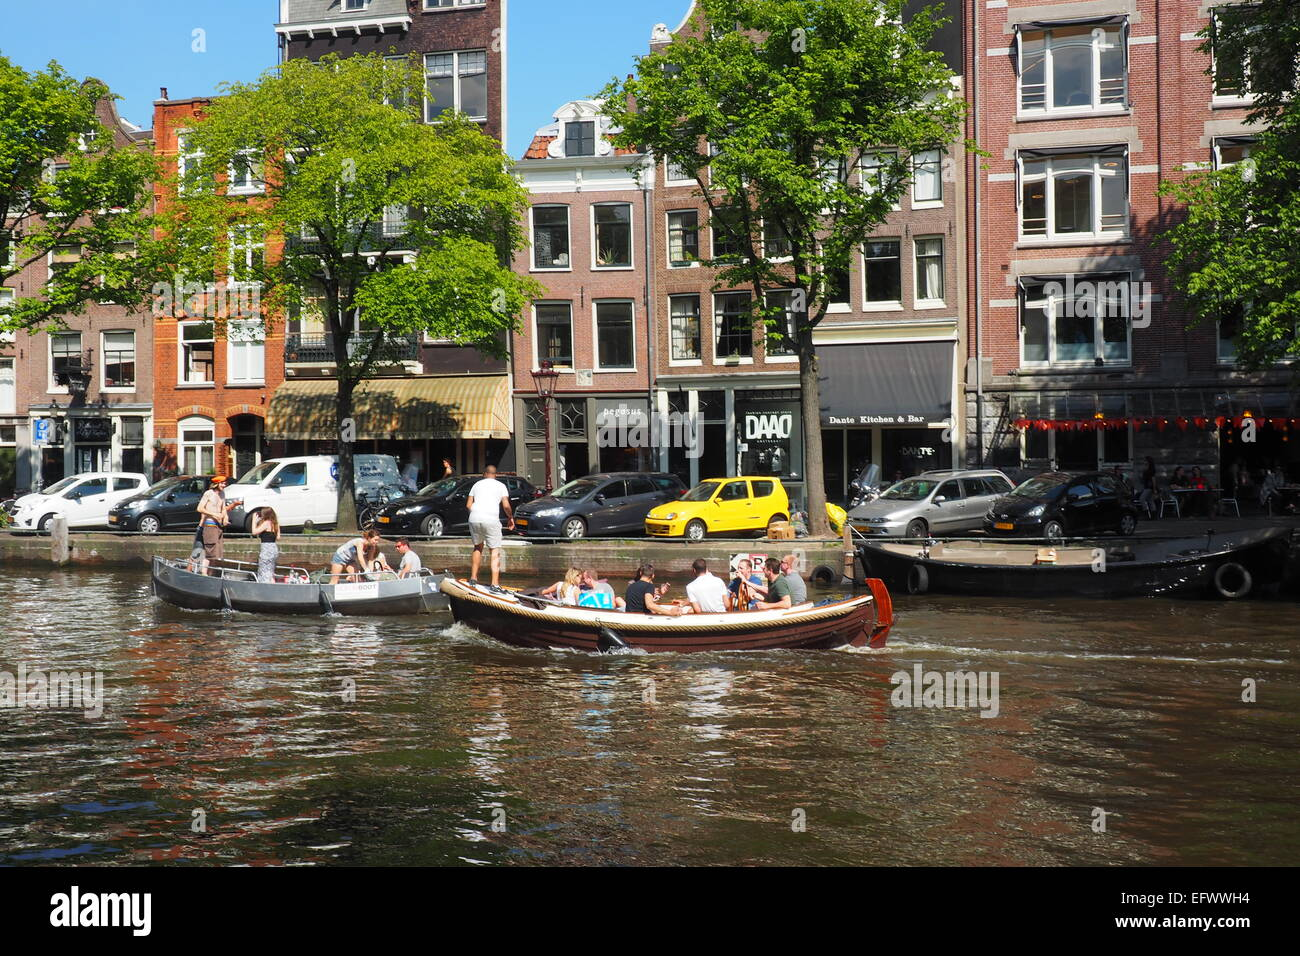 Young adults partying on two boats in an Amsterdam canal. - Stock Image